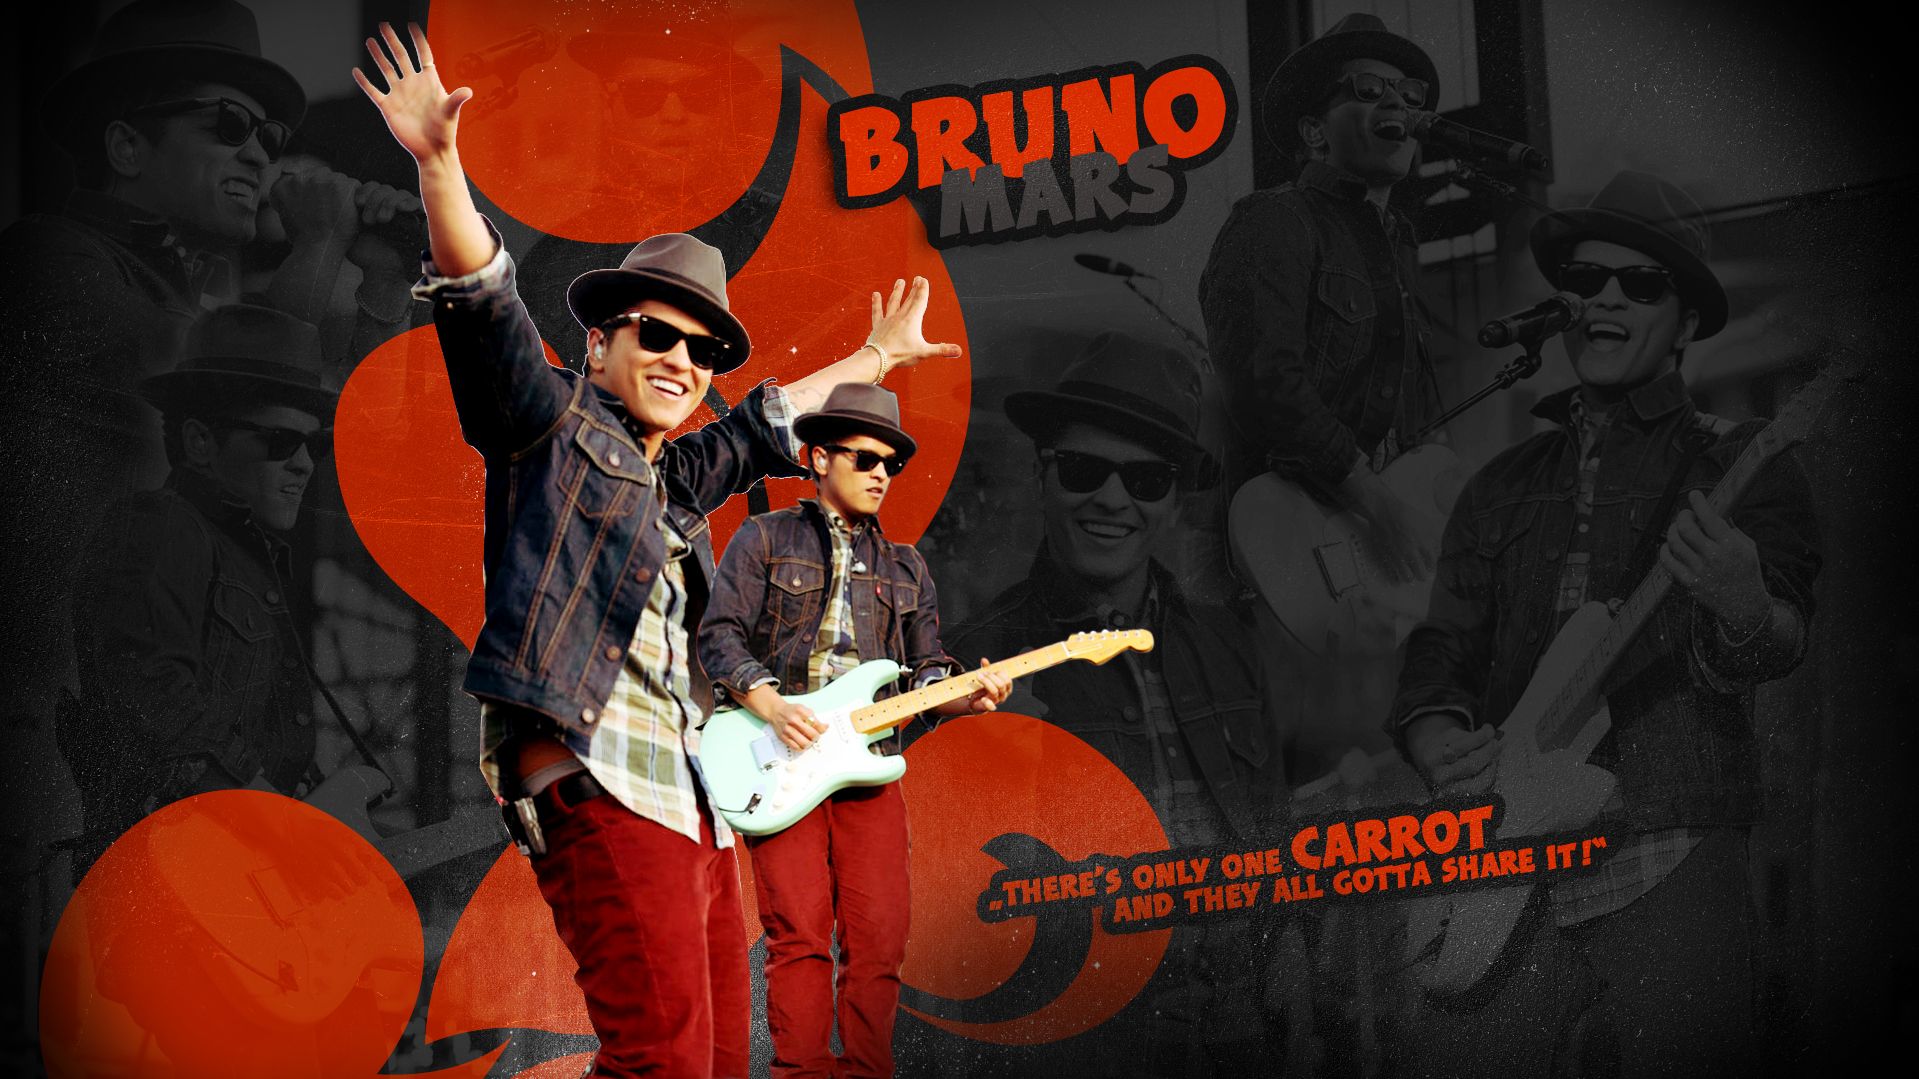 bruno mars wallpaper wallpapers high quality download free